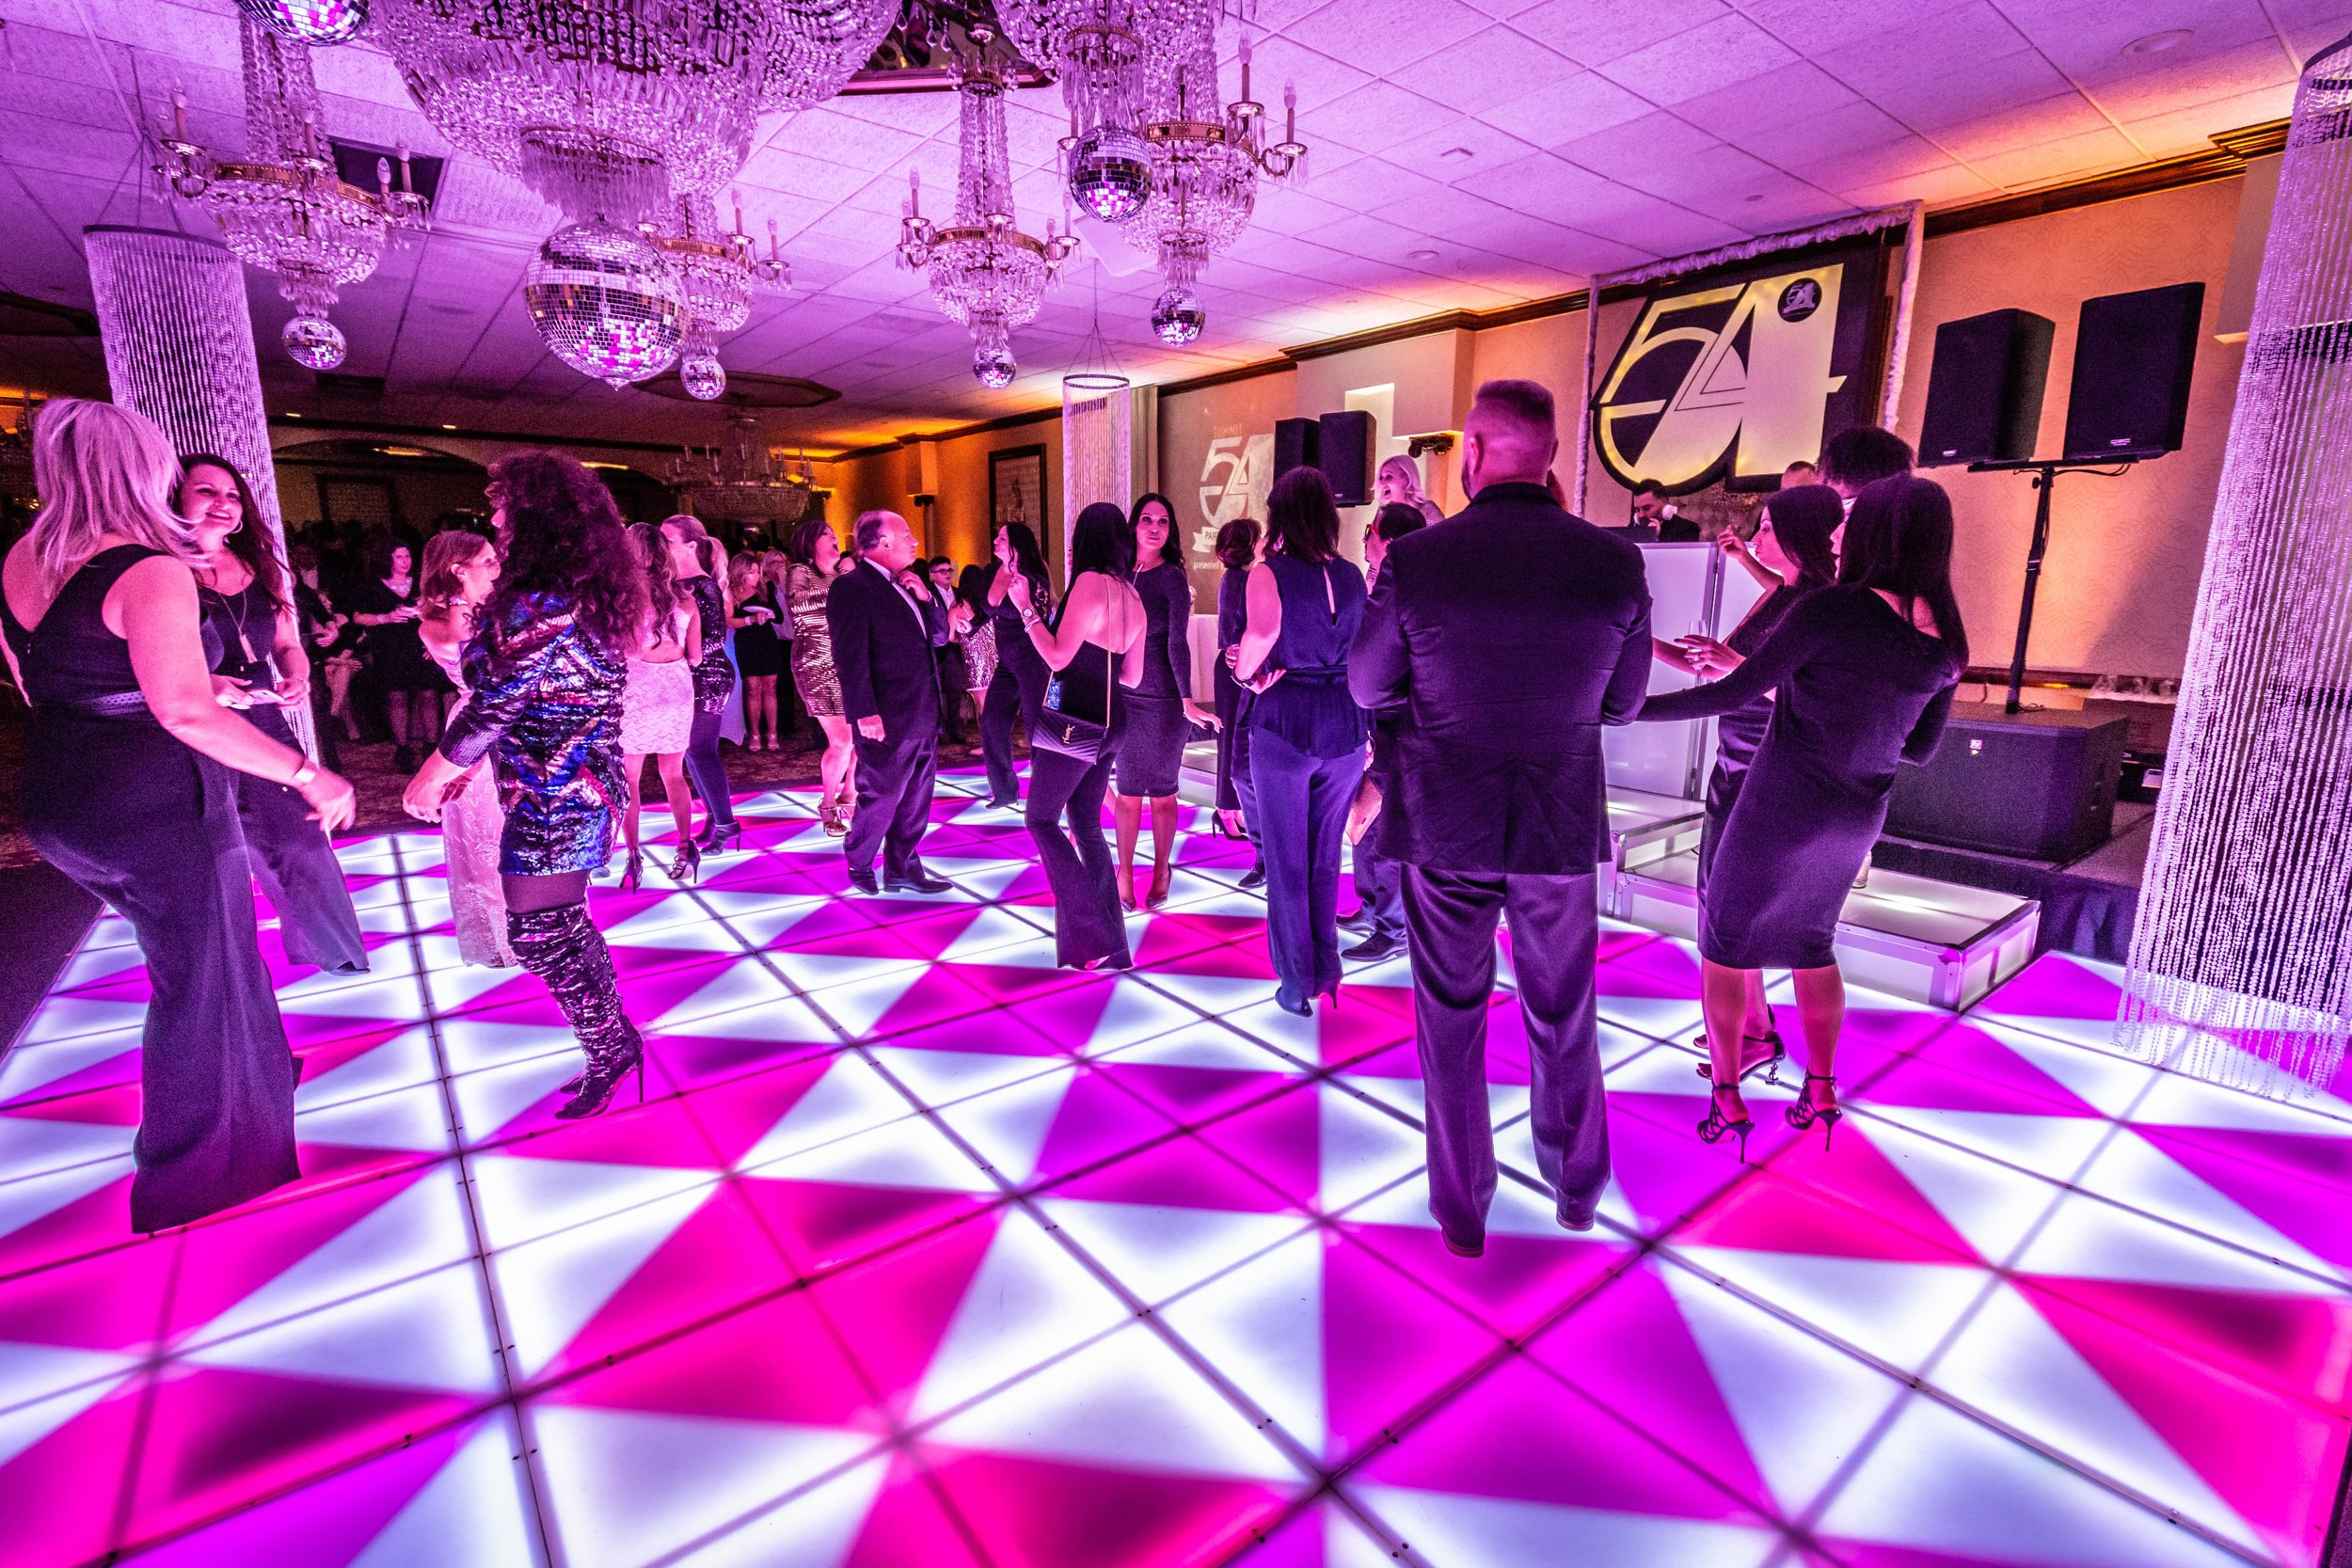 LED Dance Floor Pink White.jpg